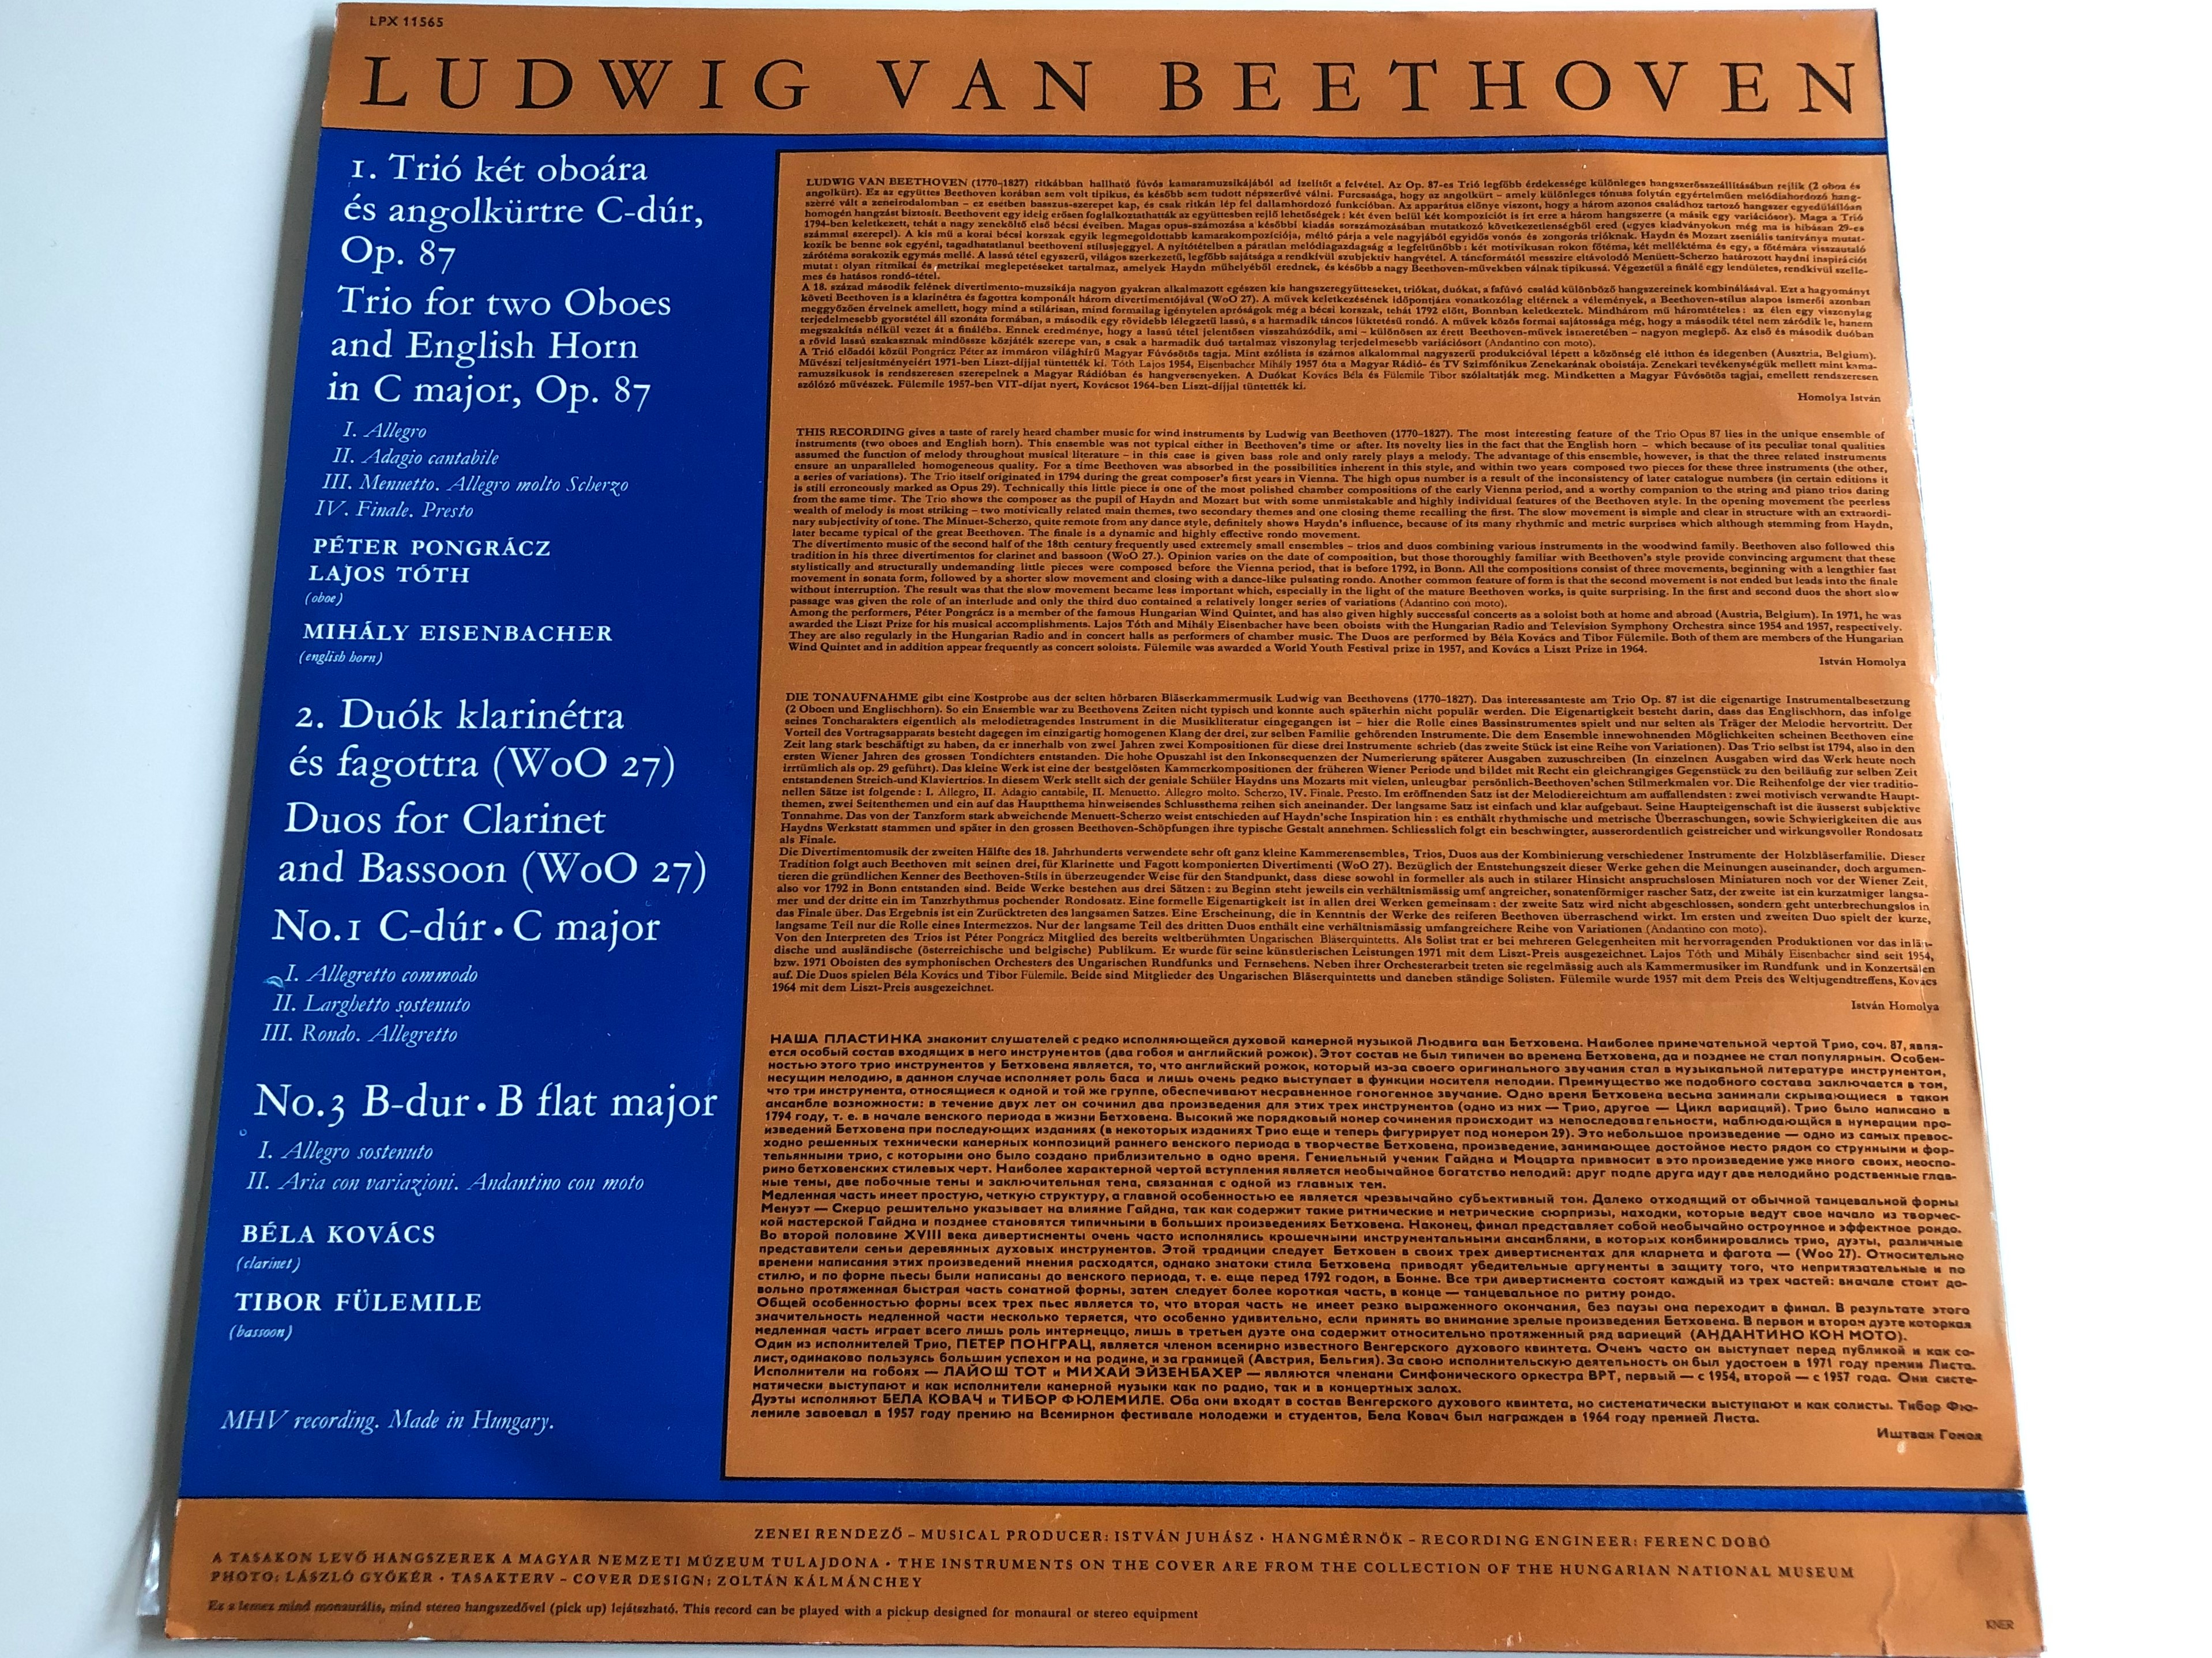 ludwig-van-beethoven-trio-for-two-oboes-and-english-horn-in-c-major-op.-87-duos-for-clarinet-and-bassoon-nos-1-and-3-woo-27-hungaroton-lp-stereo-mono-lpx-11565-2-.jpg